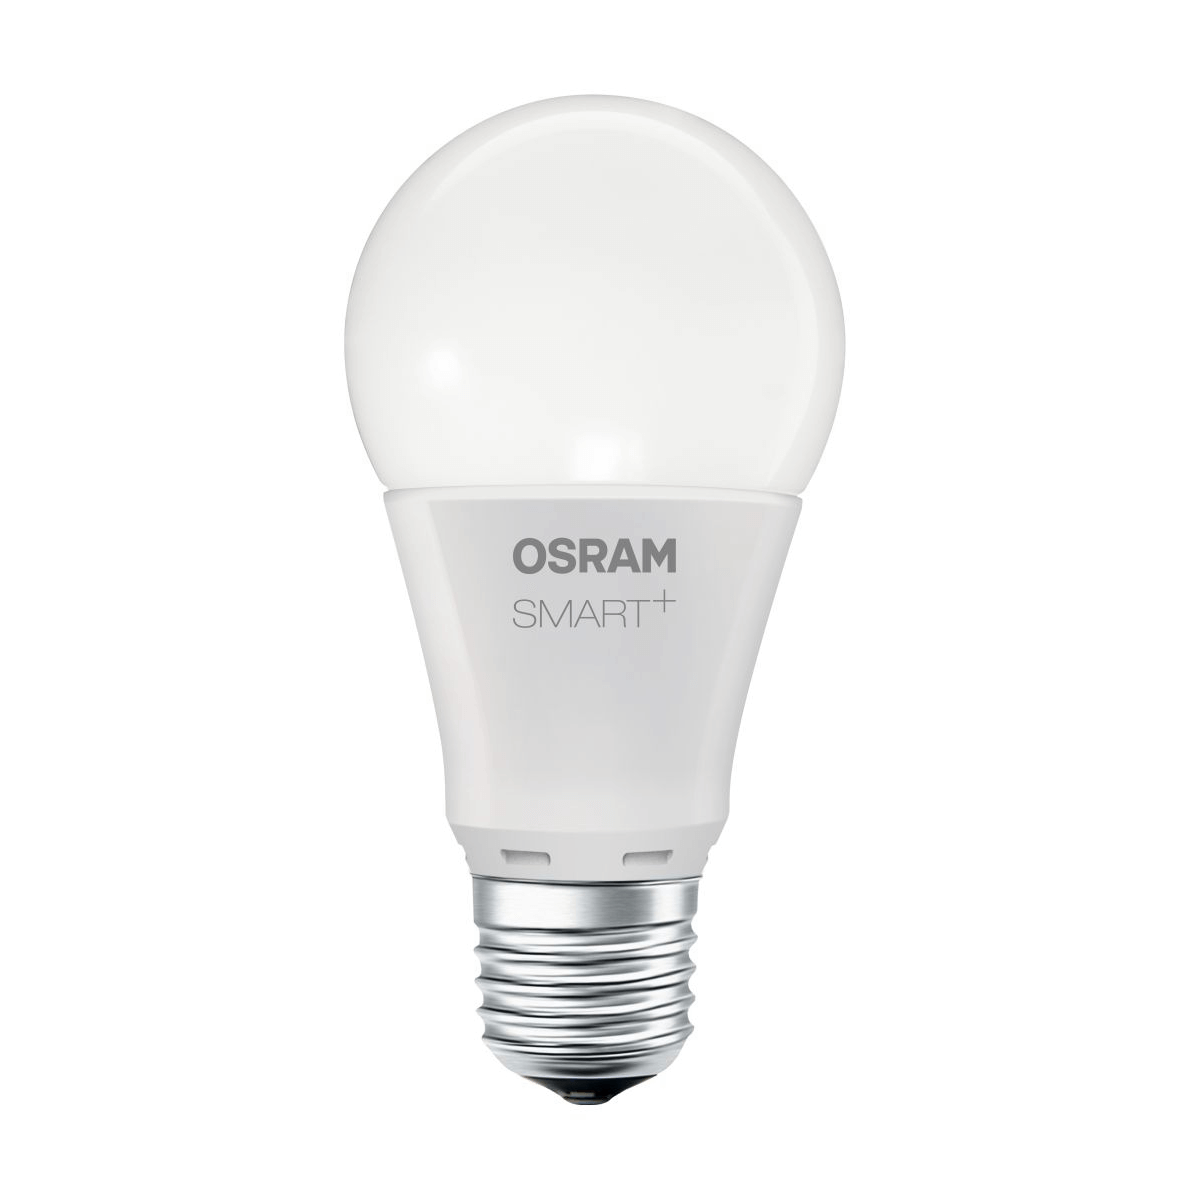 osram smart led im test apple homkit lampe ohne bridge. Black Bedroom Furniture Sets. Home Design Ideas